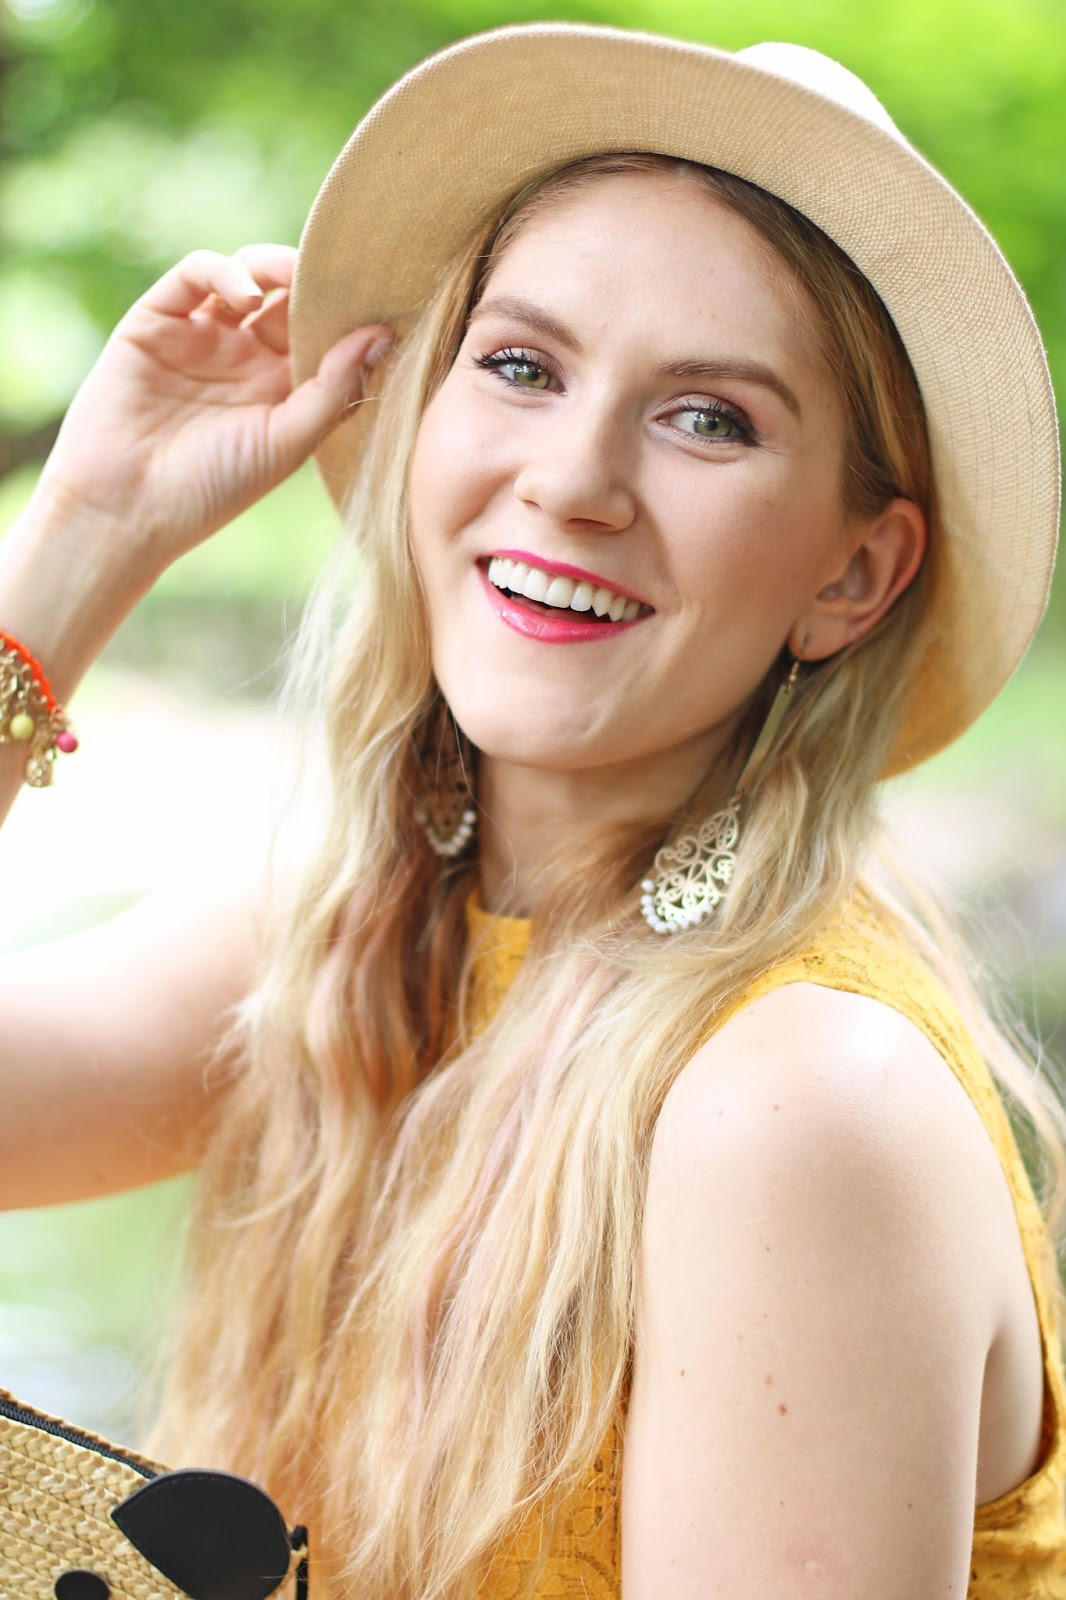 Panama Hats are perfect for Summer!